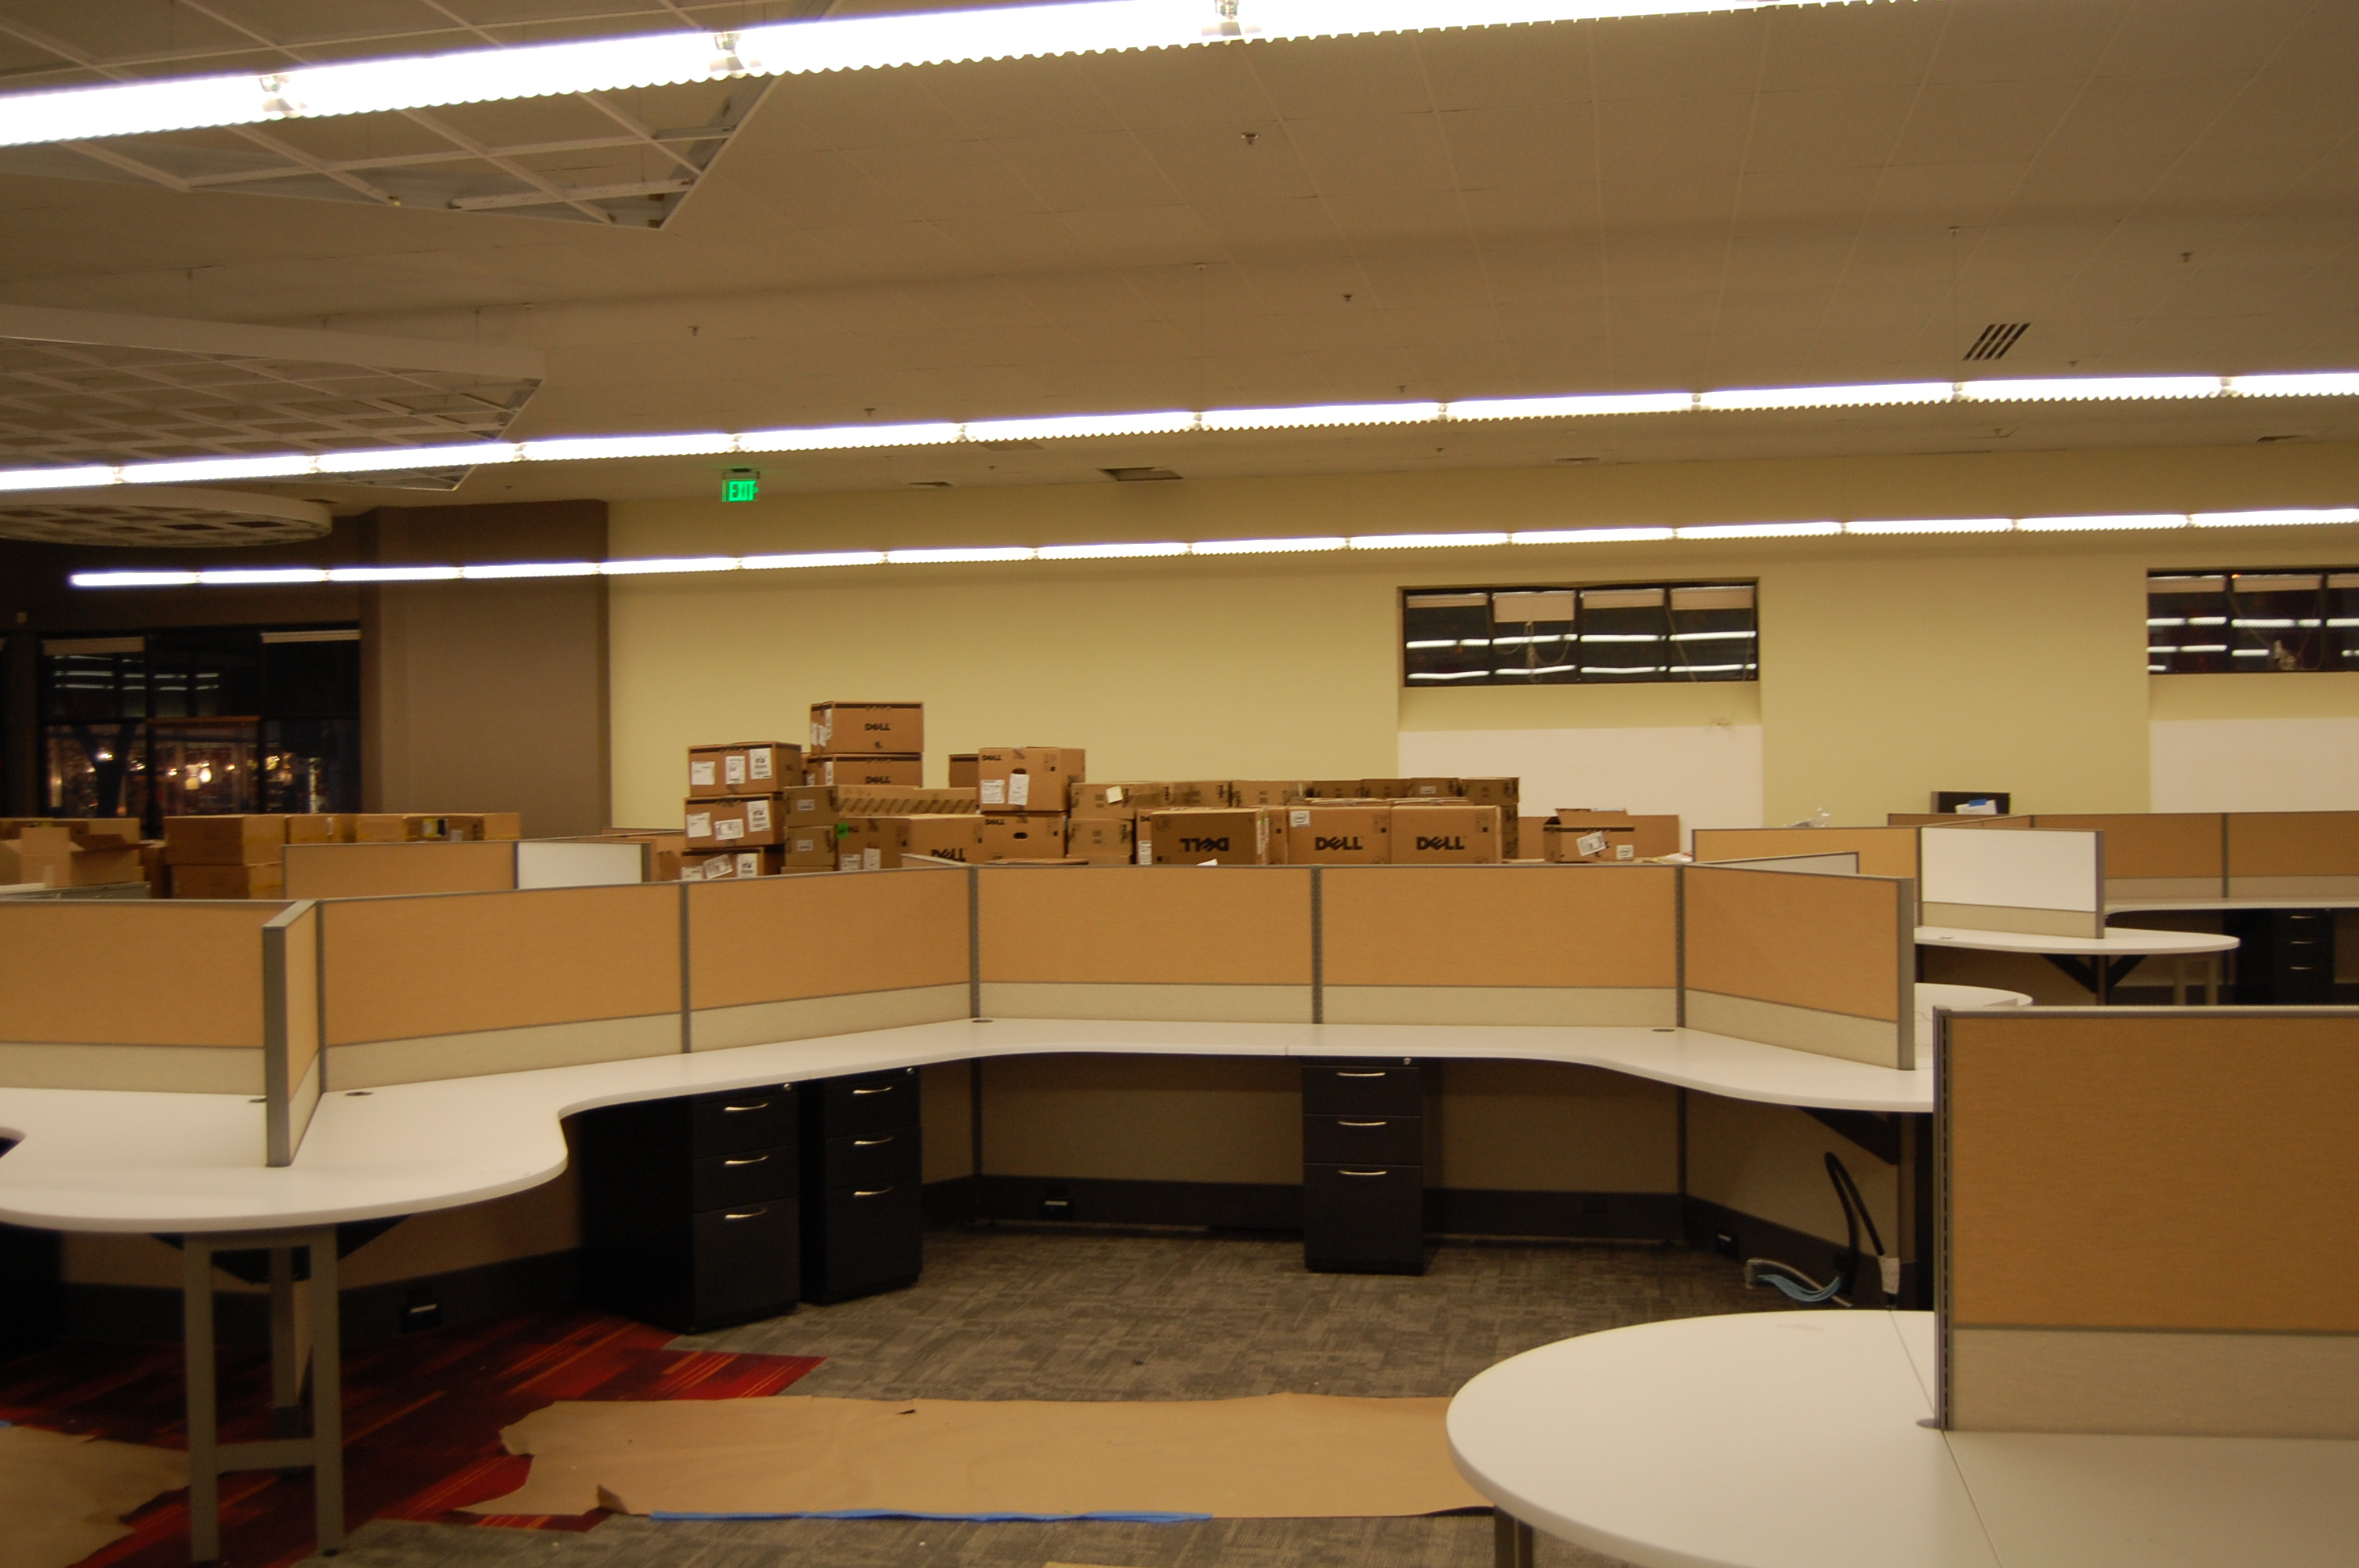 cubicle-installation (1)